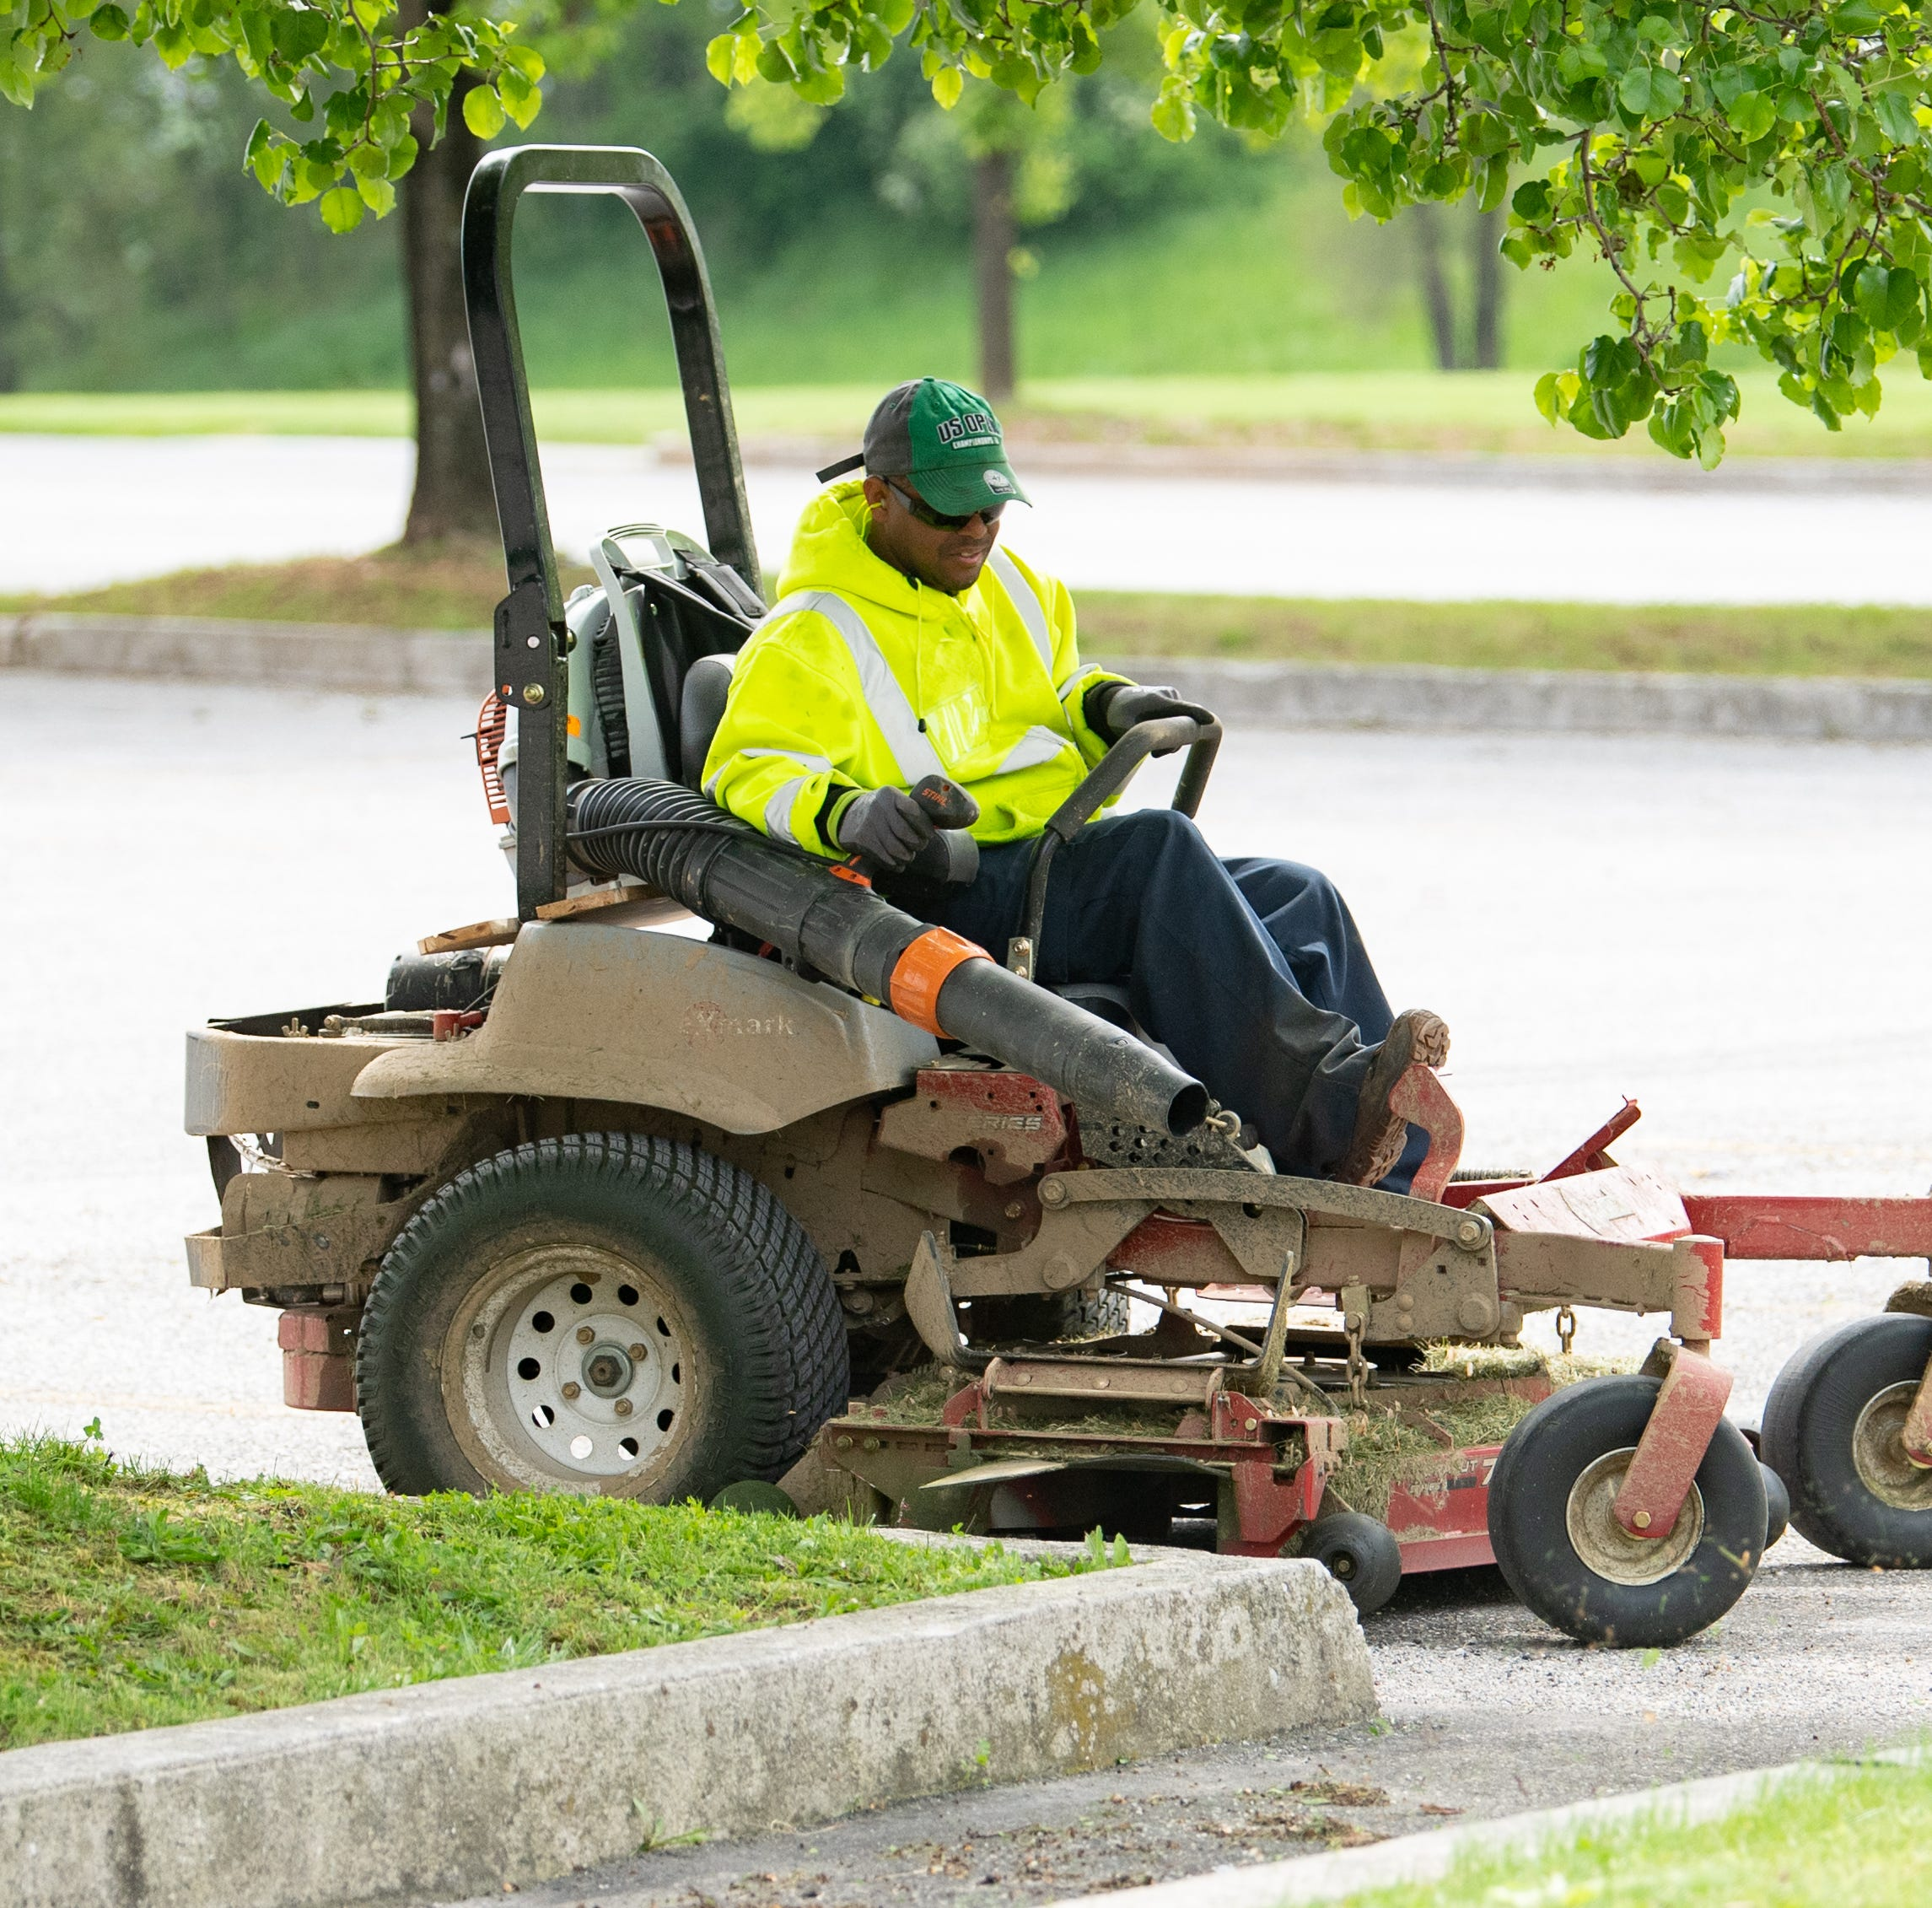 Fines for blowing grass clippings onto the road? It could happen